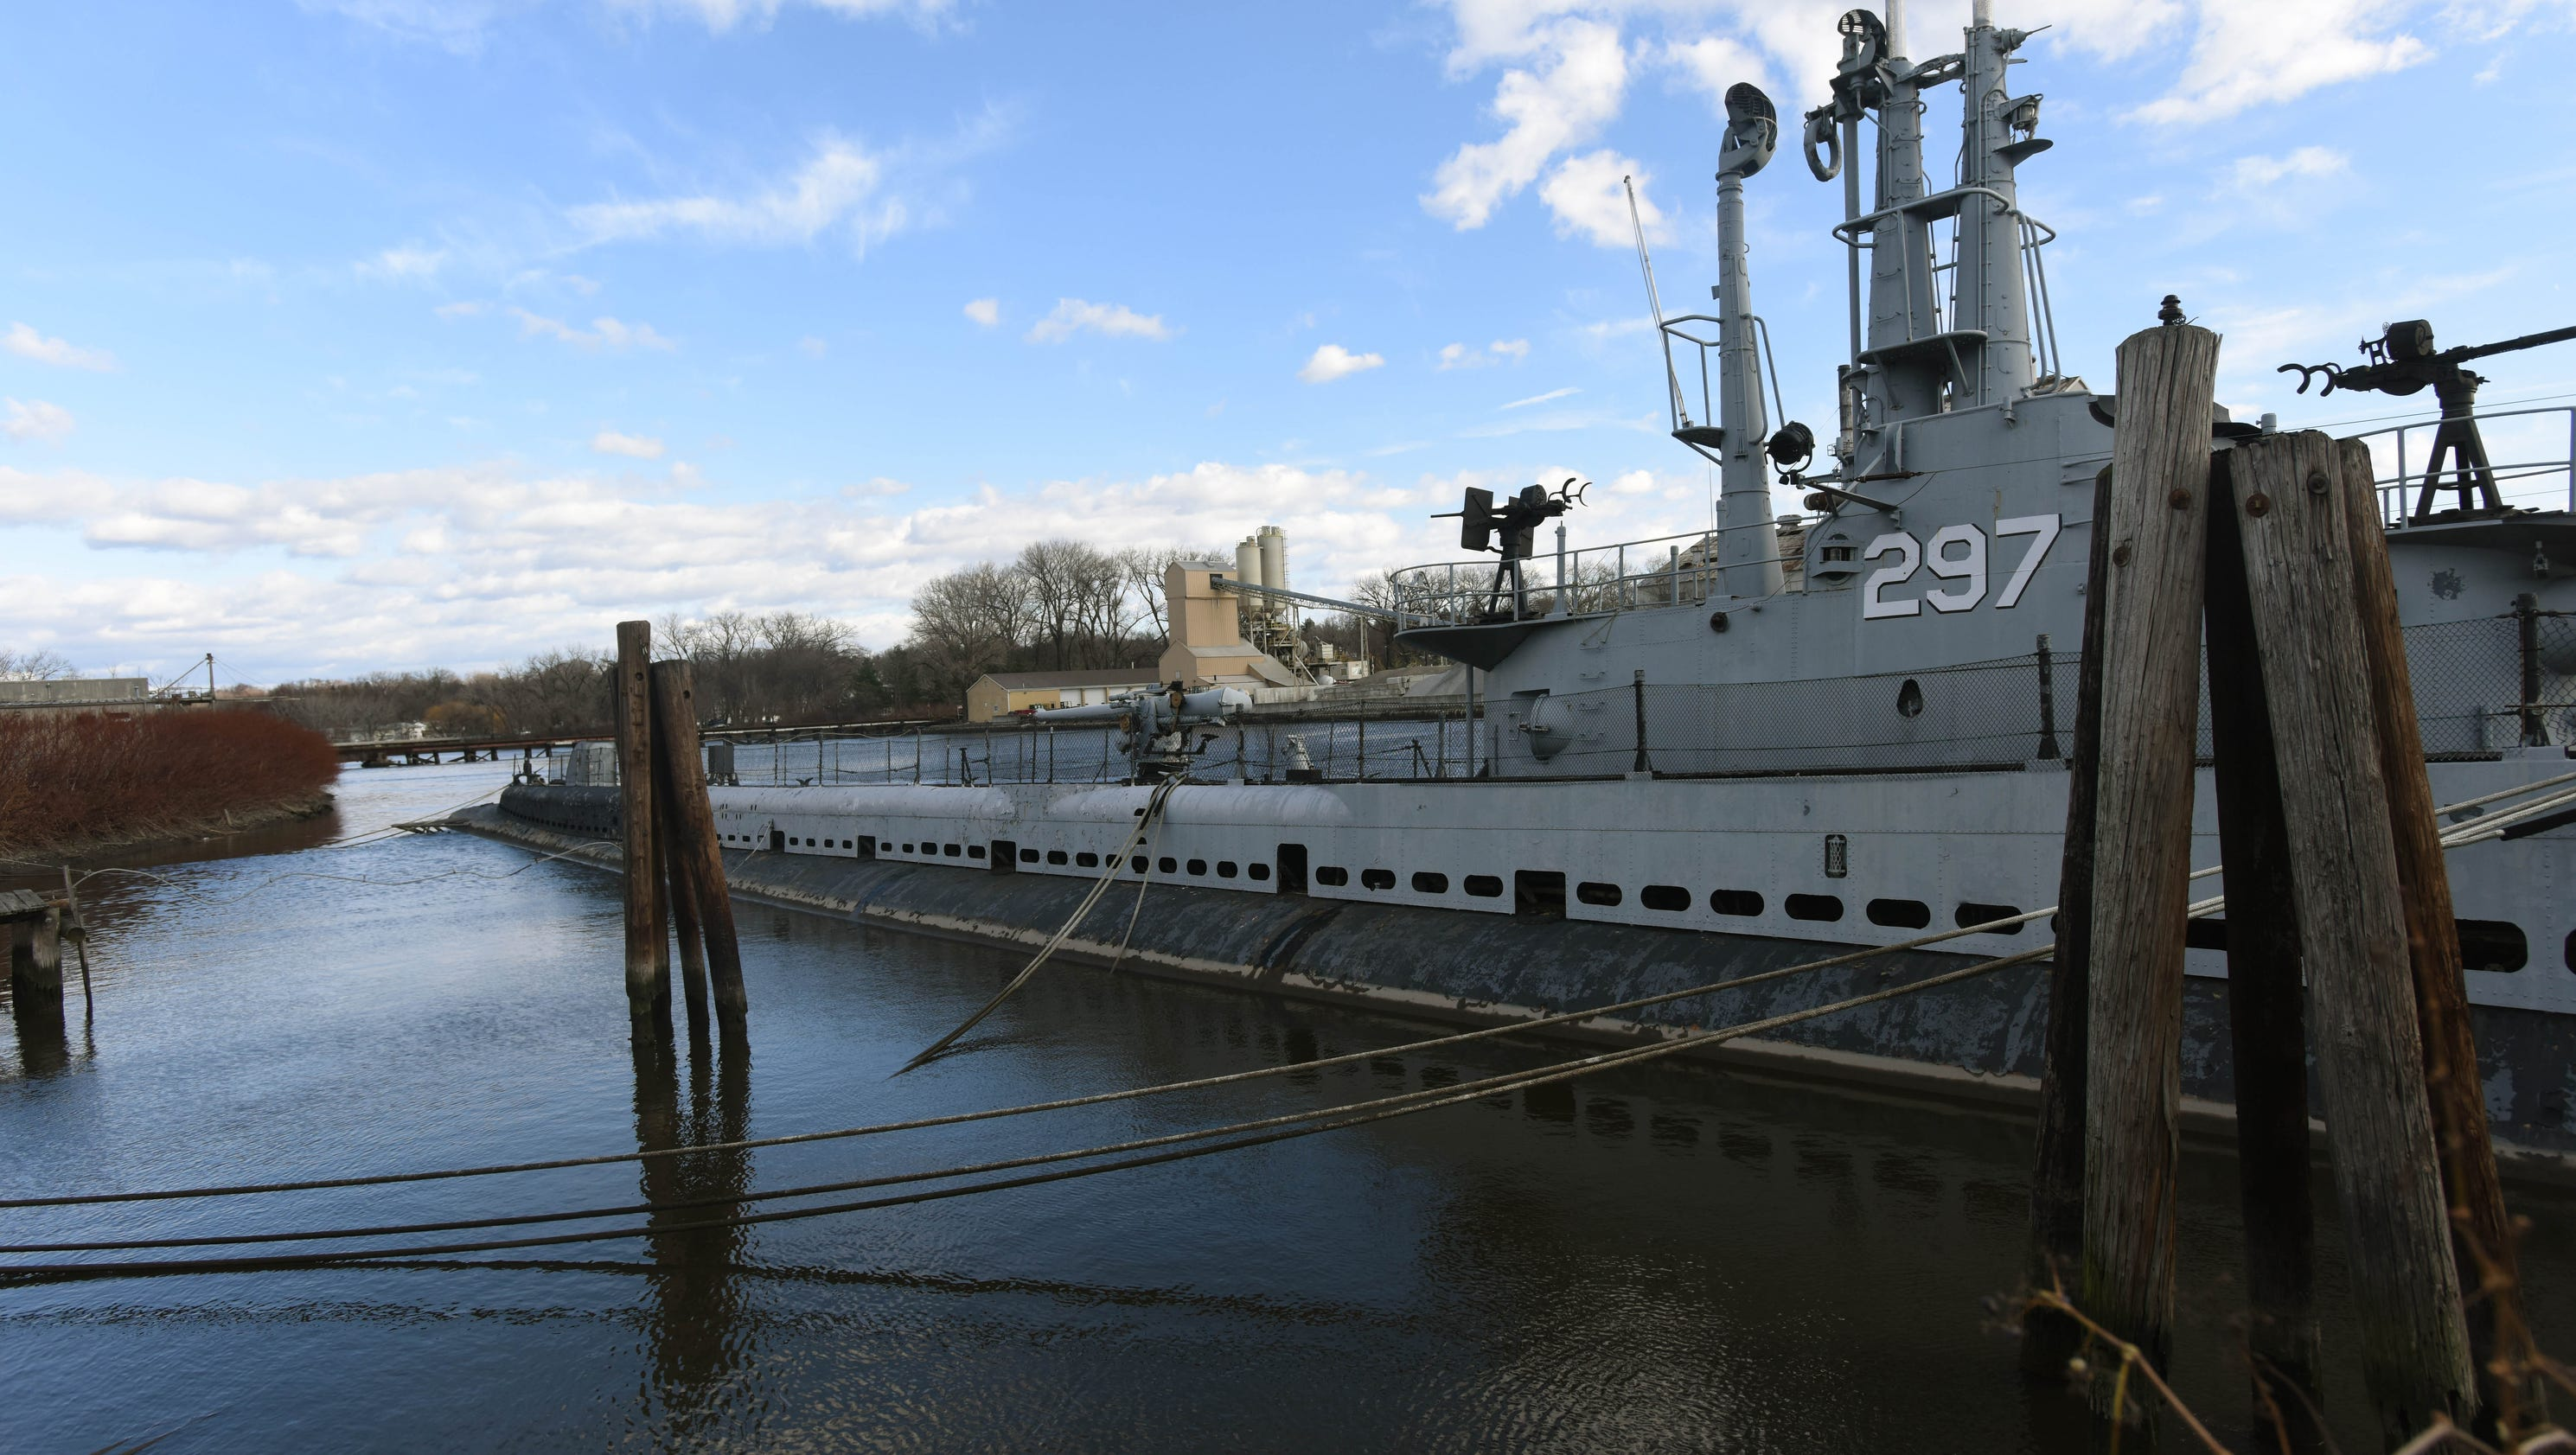 Sale Home Interior 5 Things To Know About The Historic Uss Ling Submarine